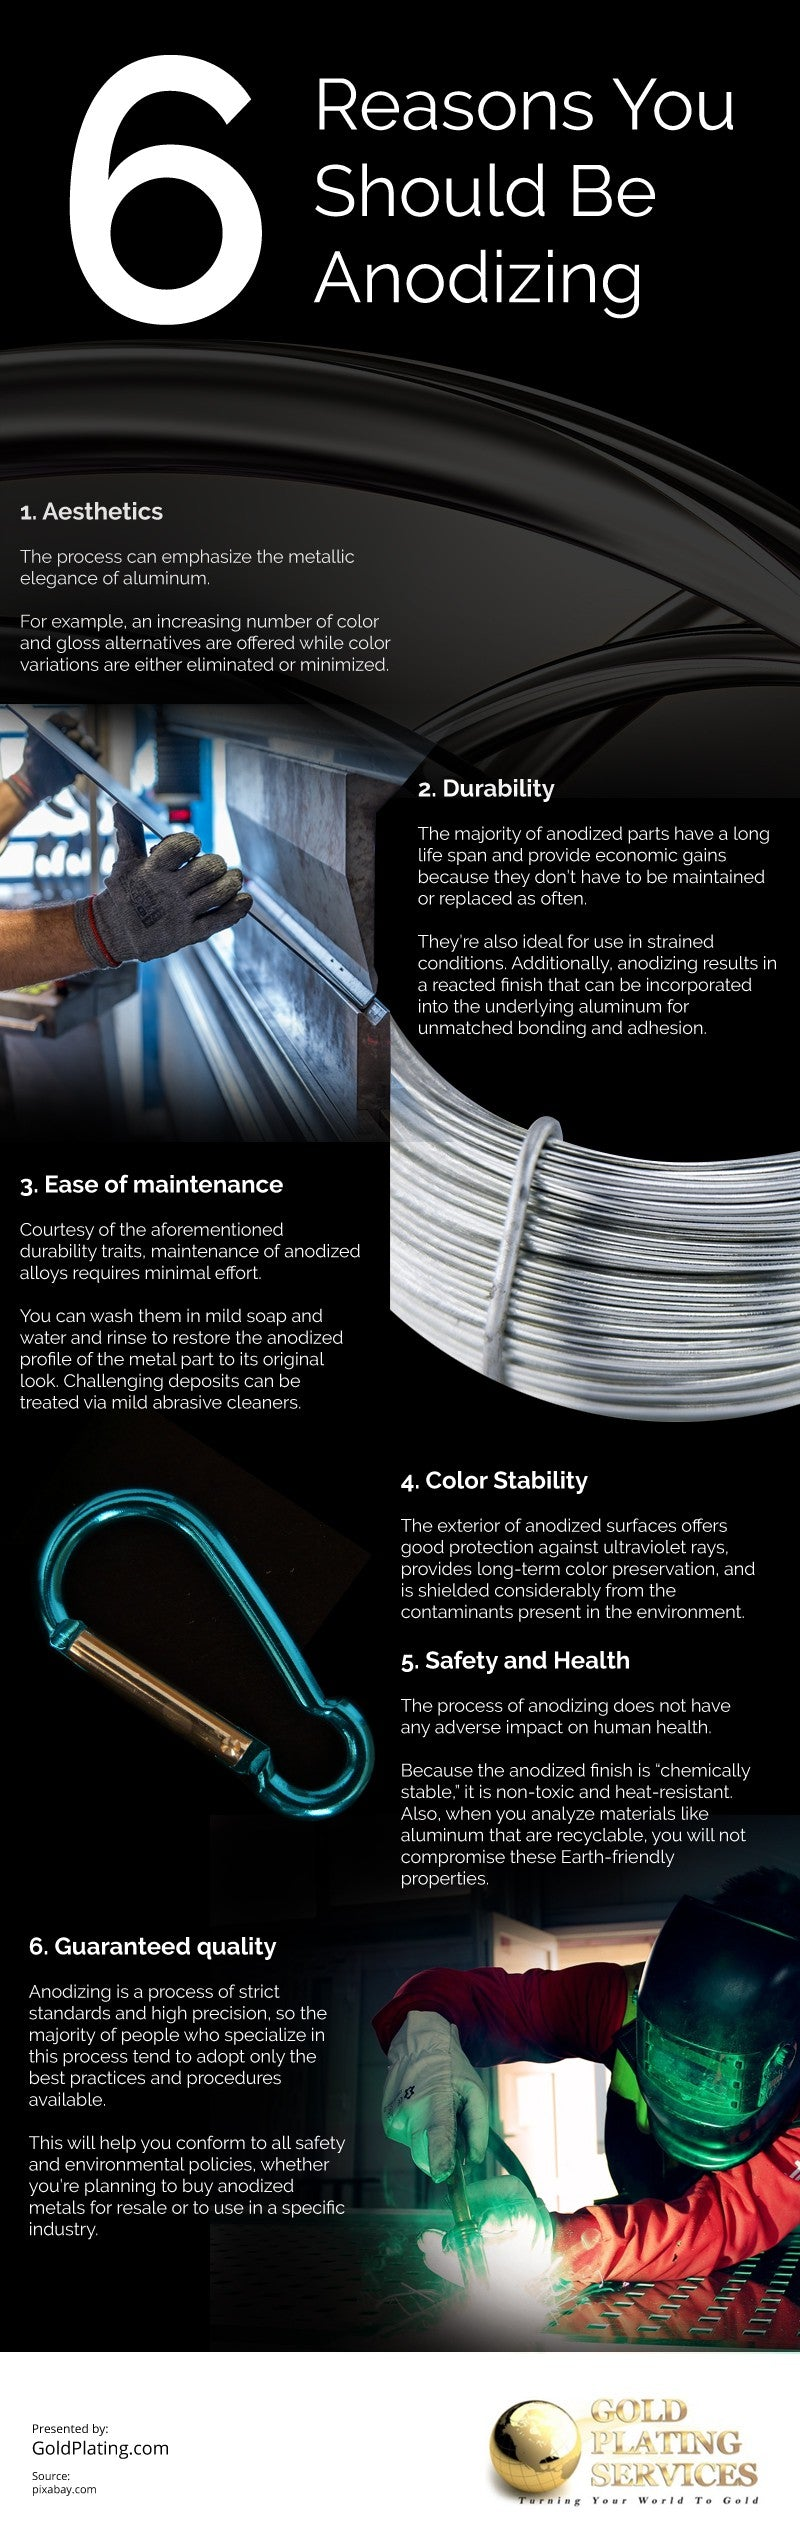 6 Reasons You Should be Anodizing [infographic]